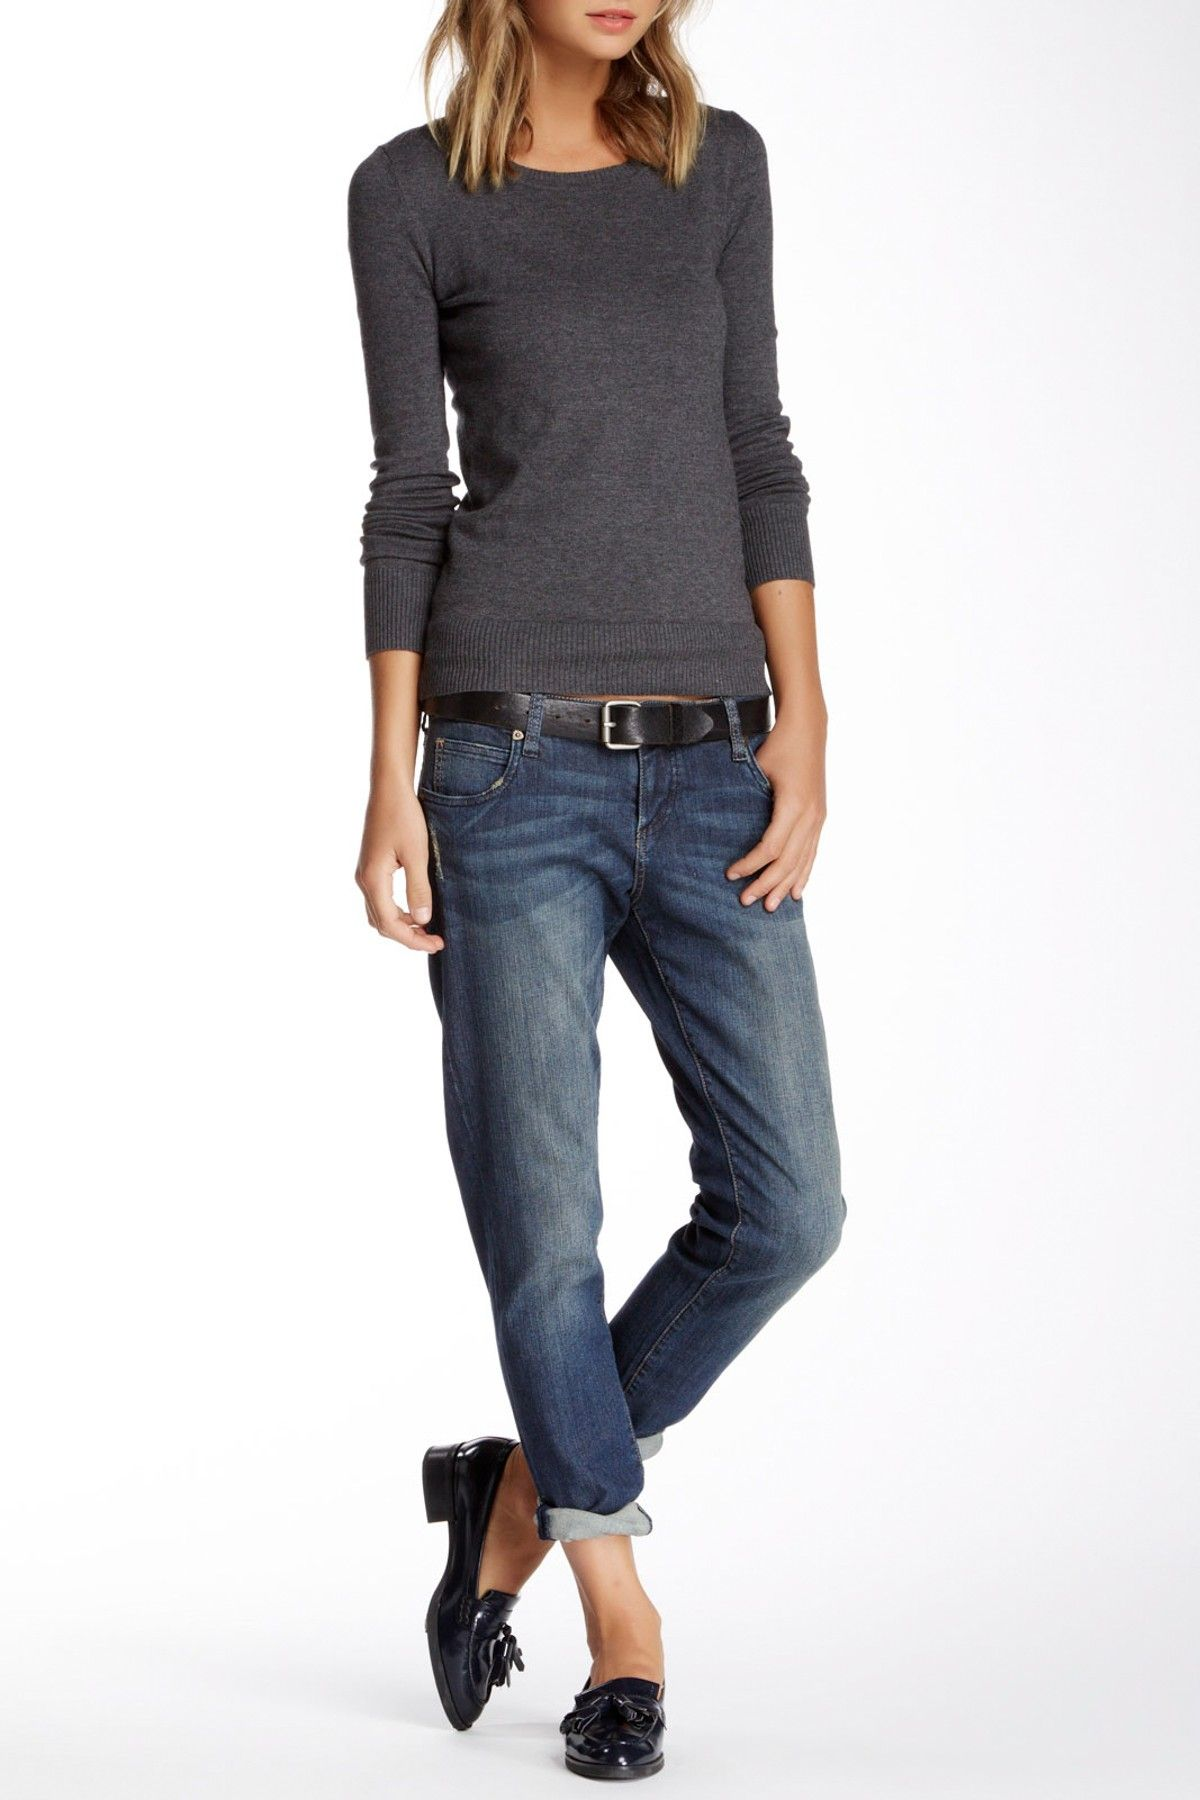 KUT from the Kloth | Cleaned Up Katy Boyfriend Jeans #nordstromrack